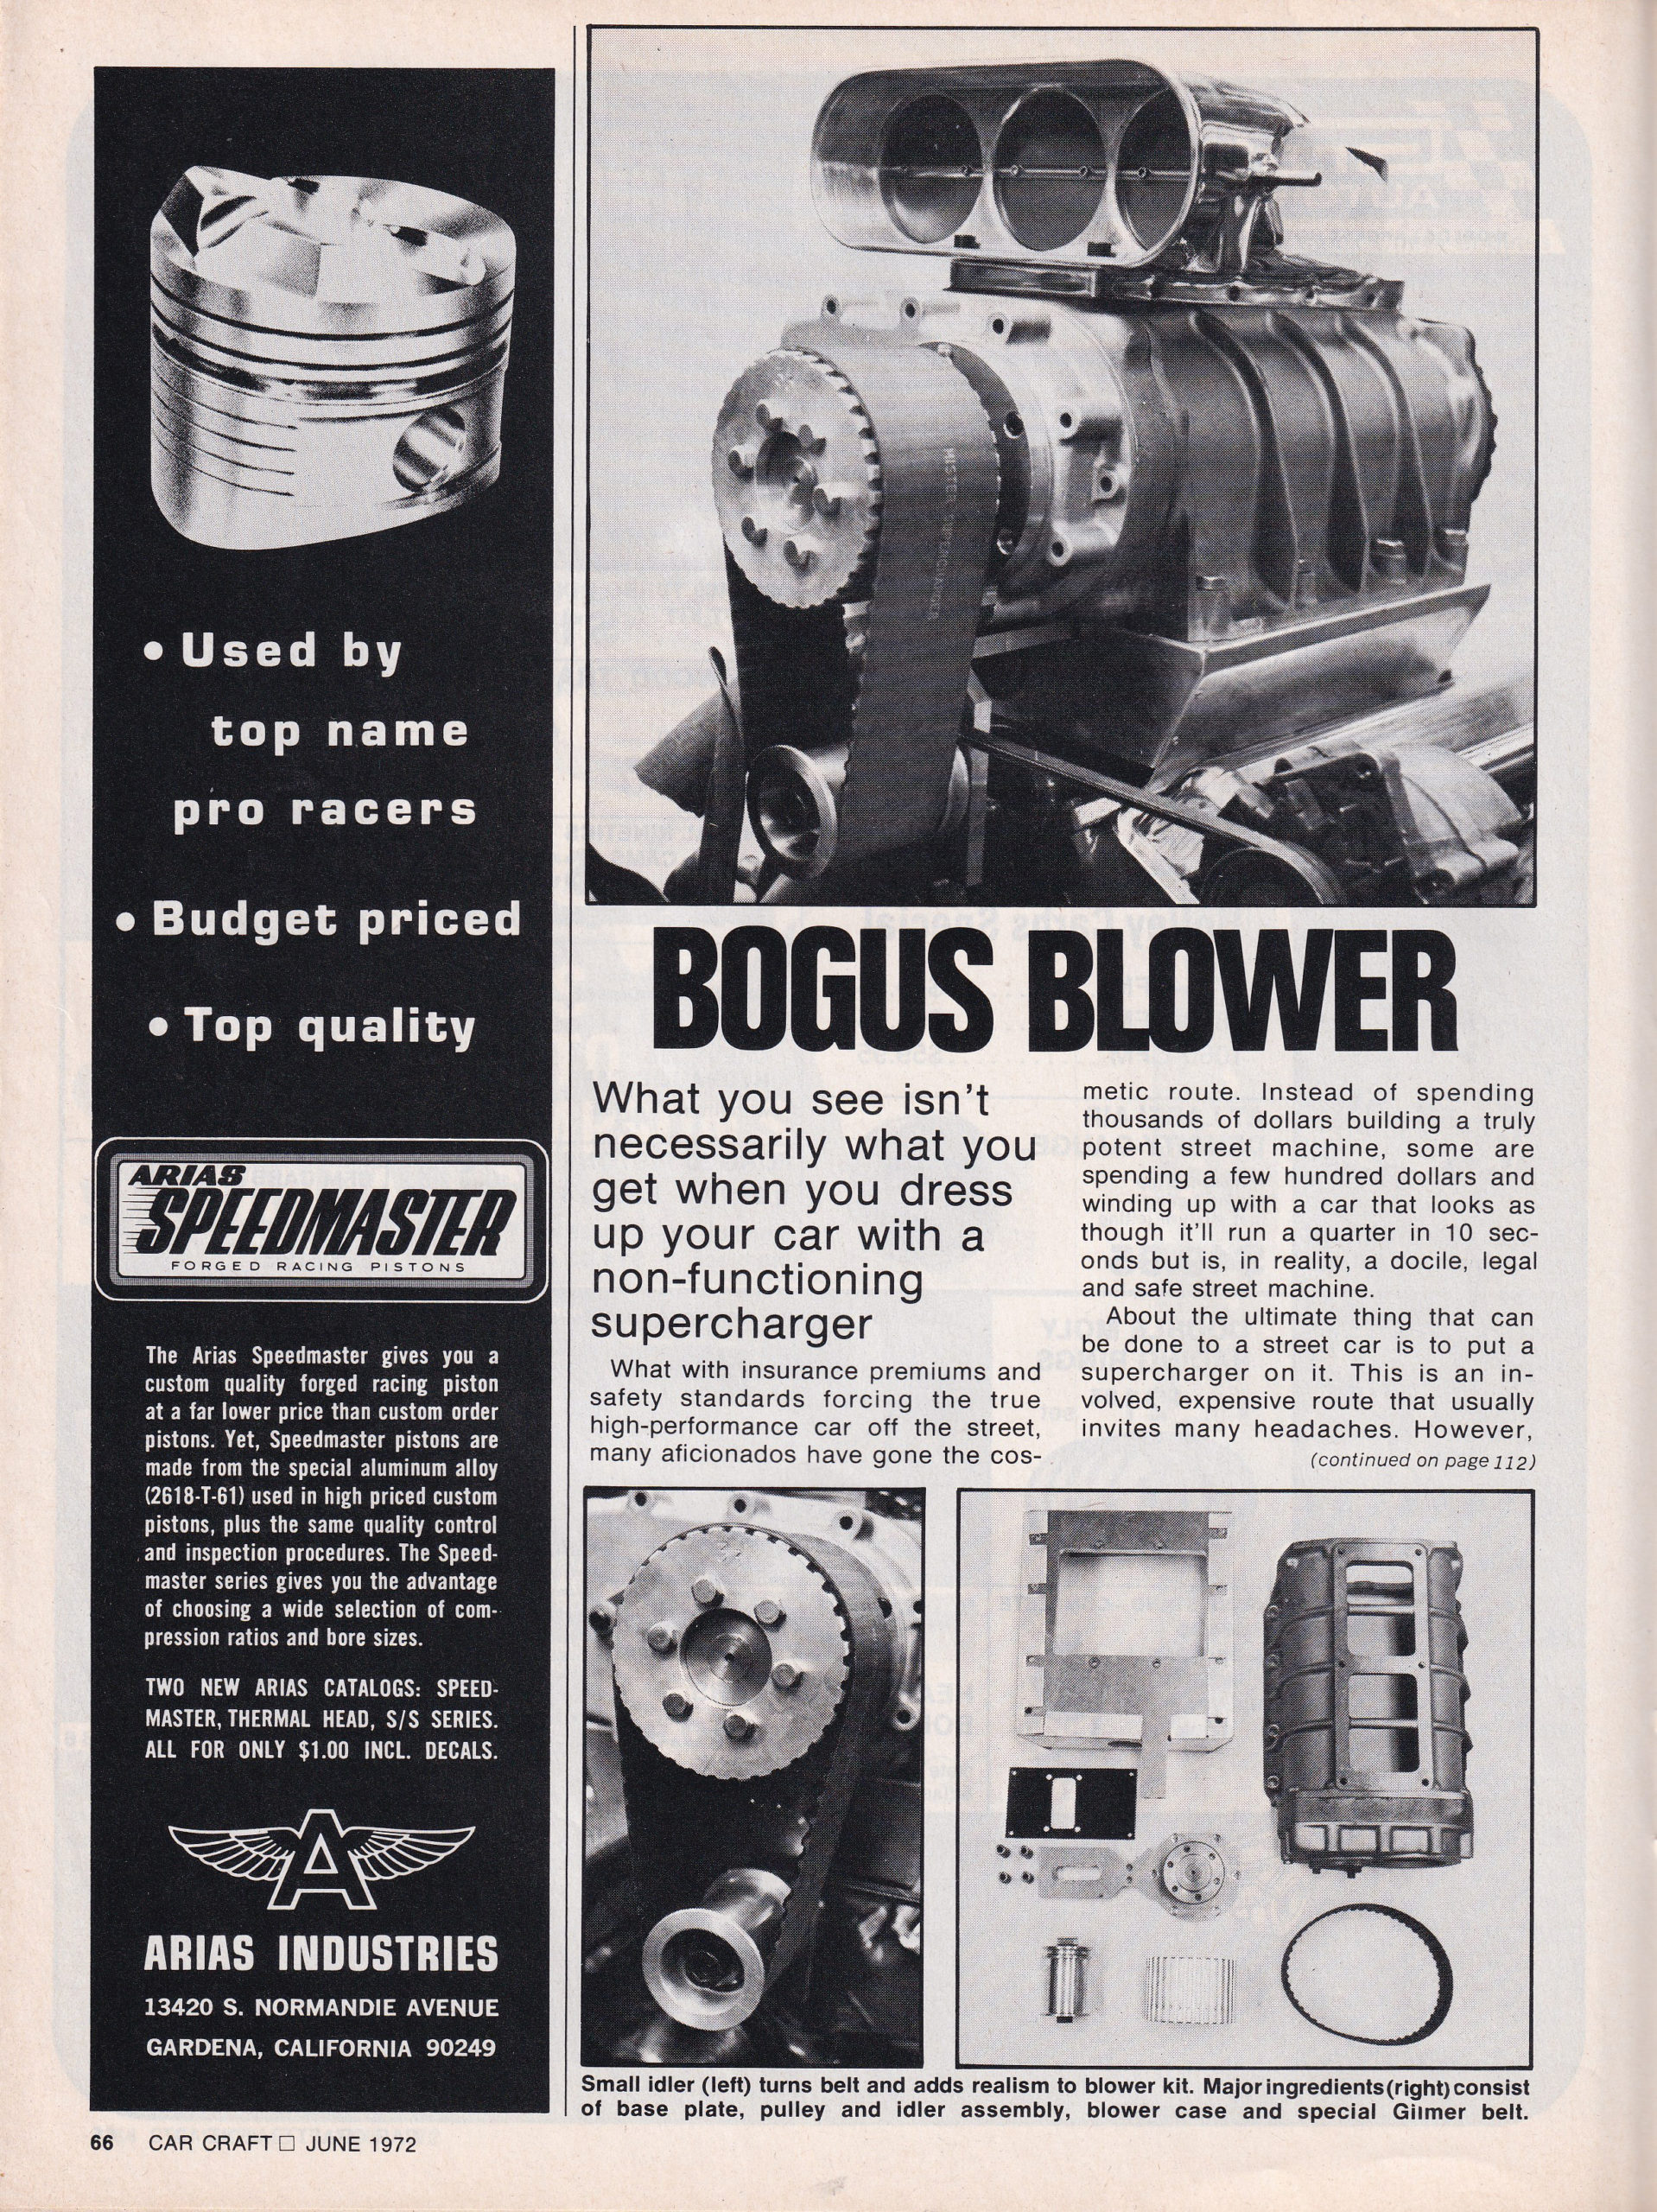 The Bogus Blower article from the June 1972 issue of Car Craft, page 1.